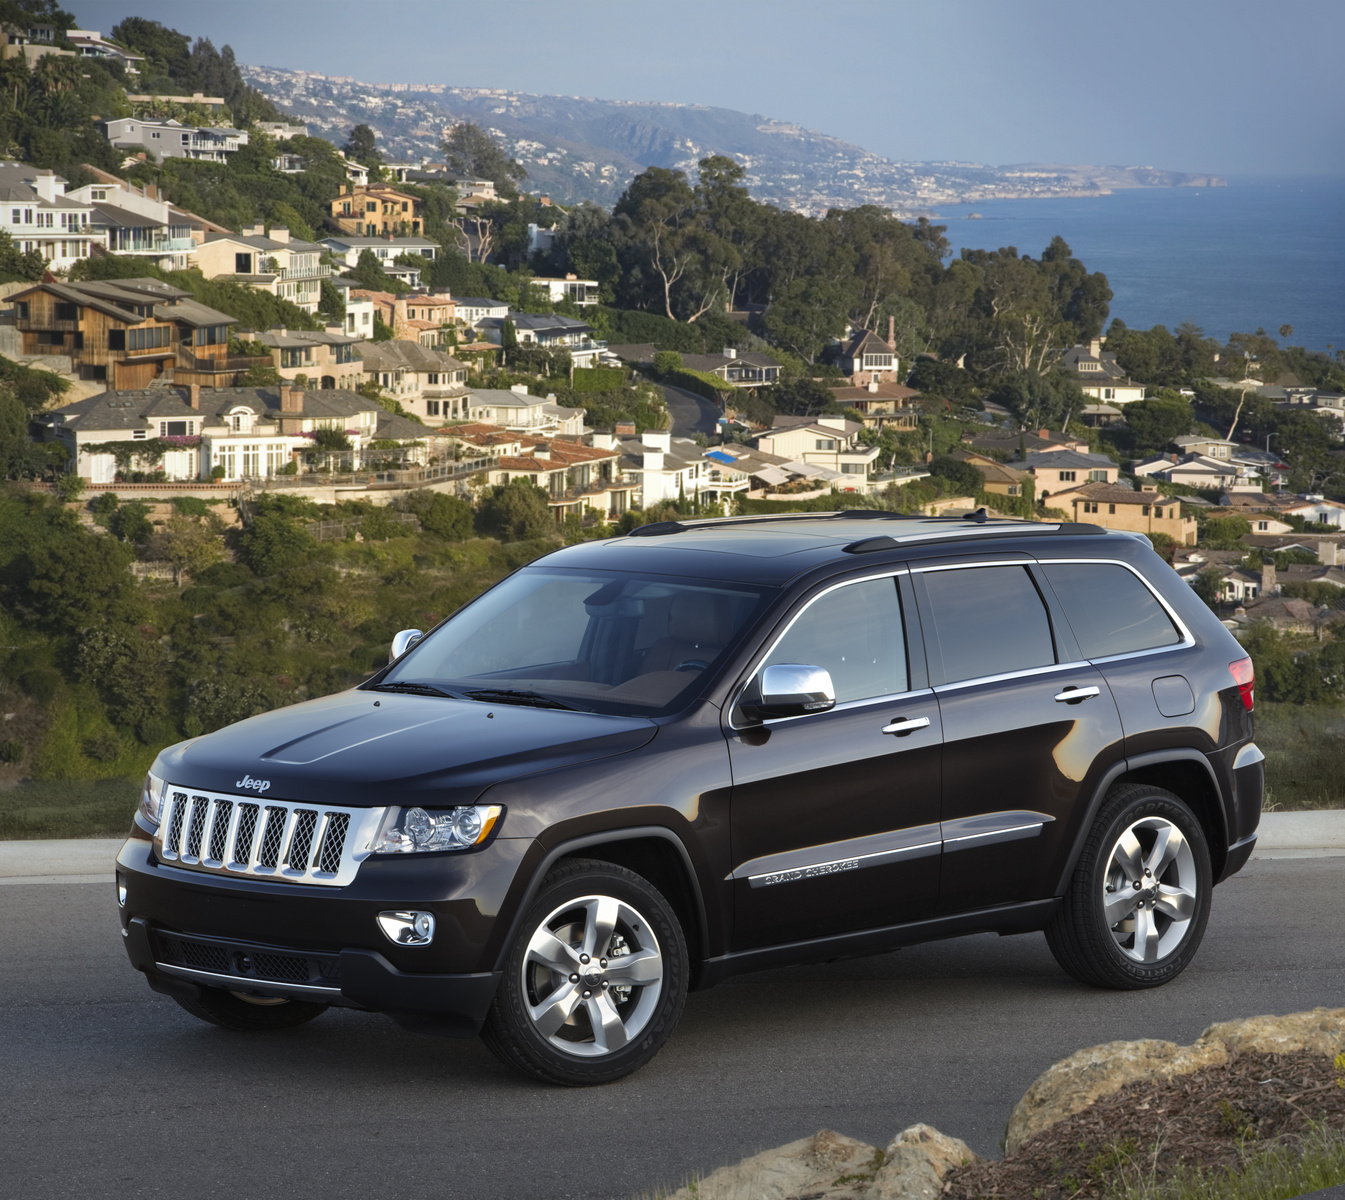 2013 jeep grand cherokee - review